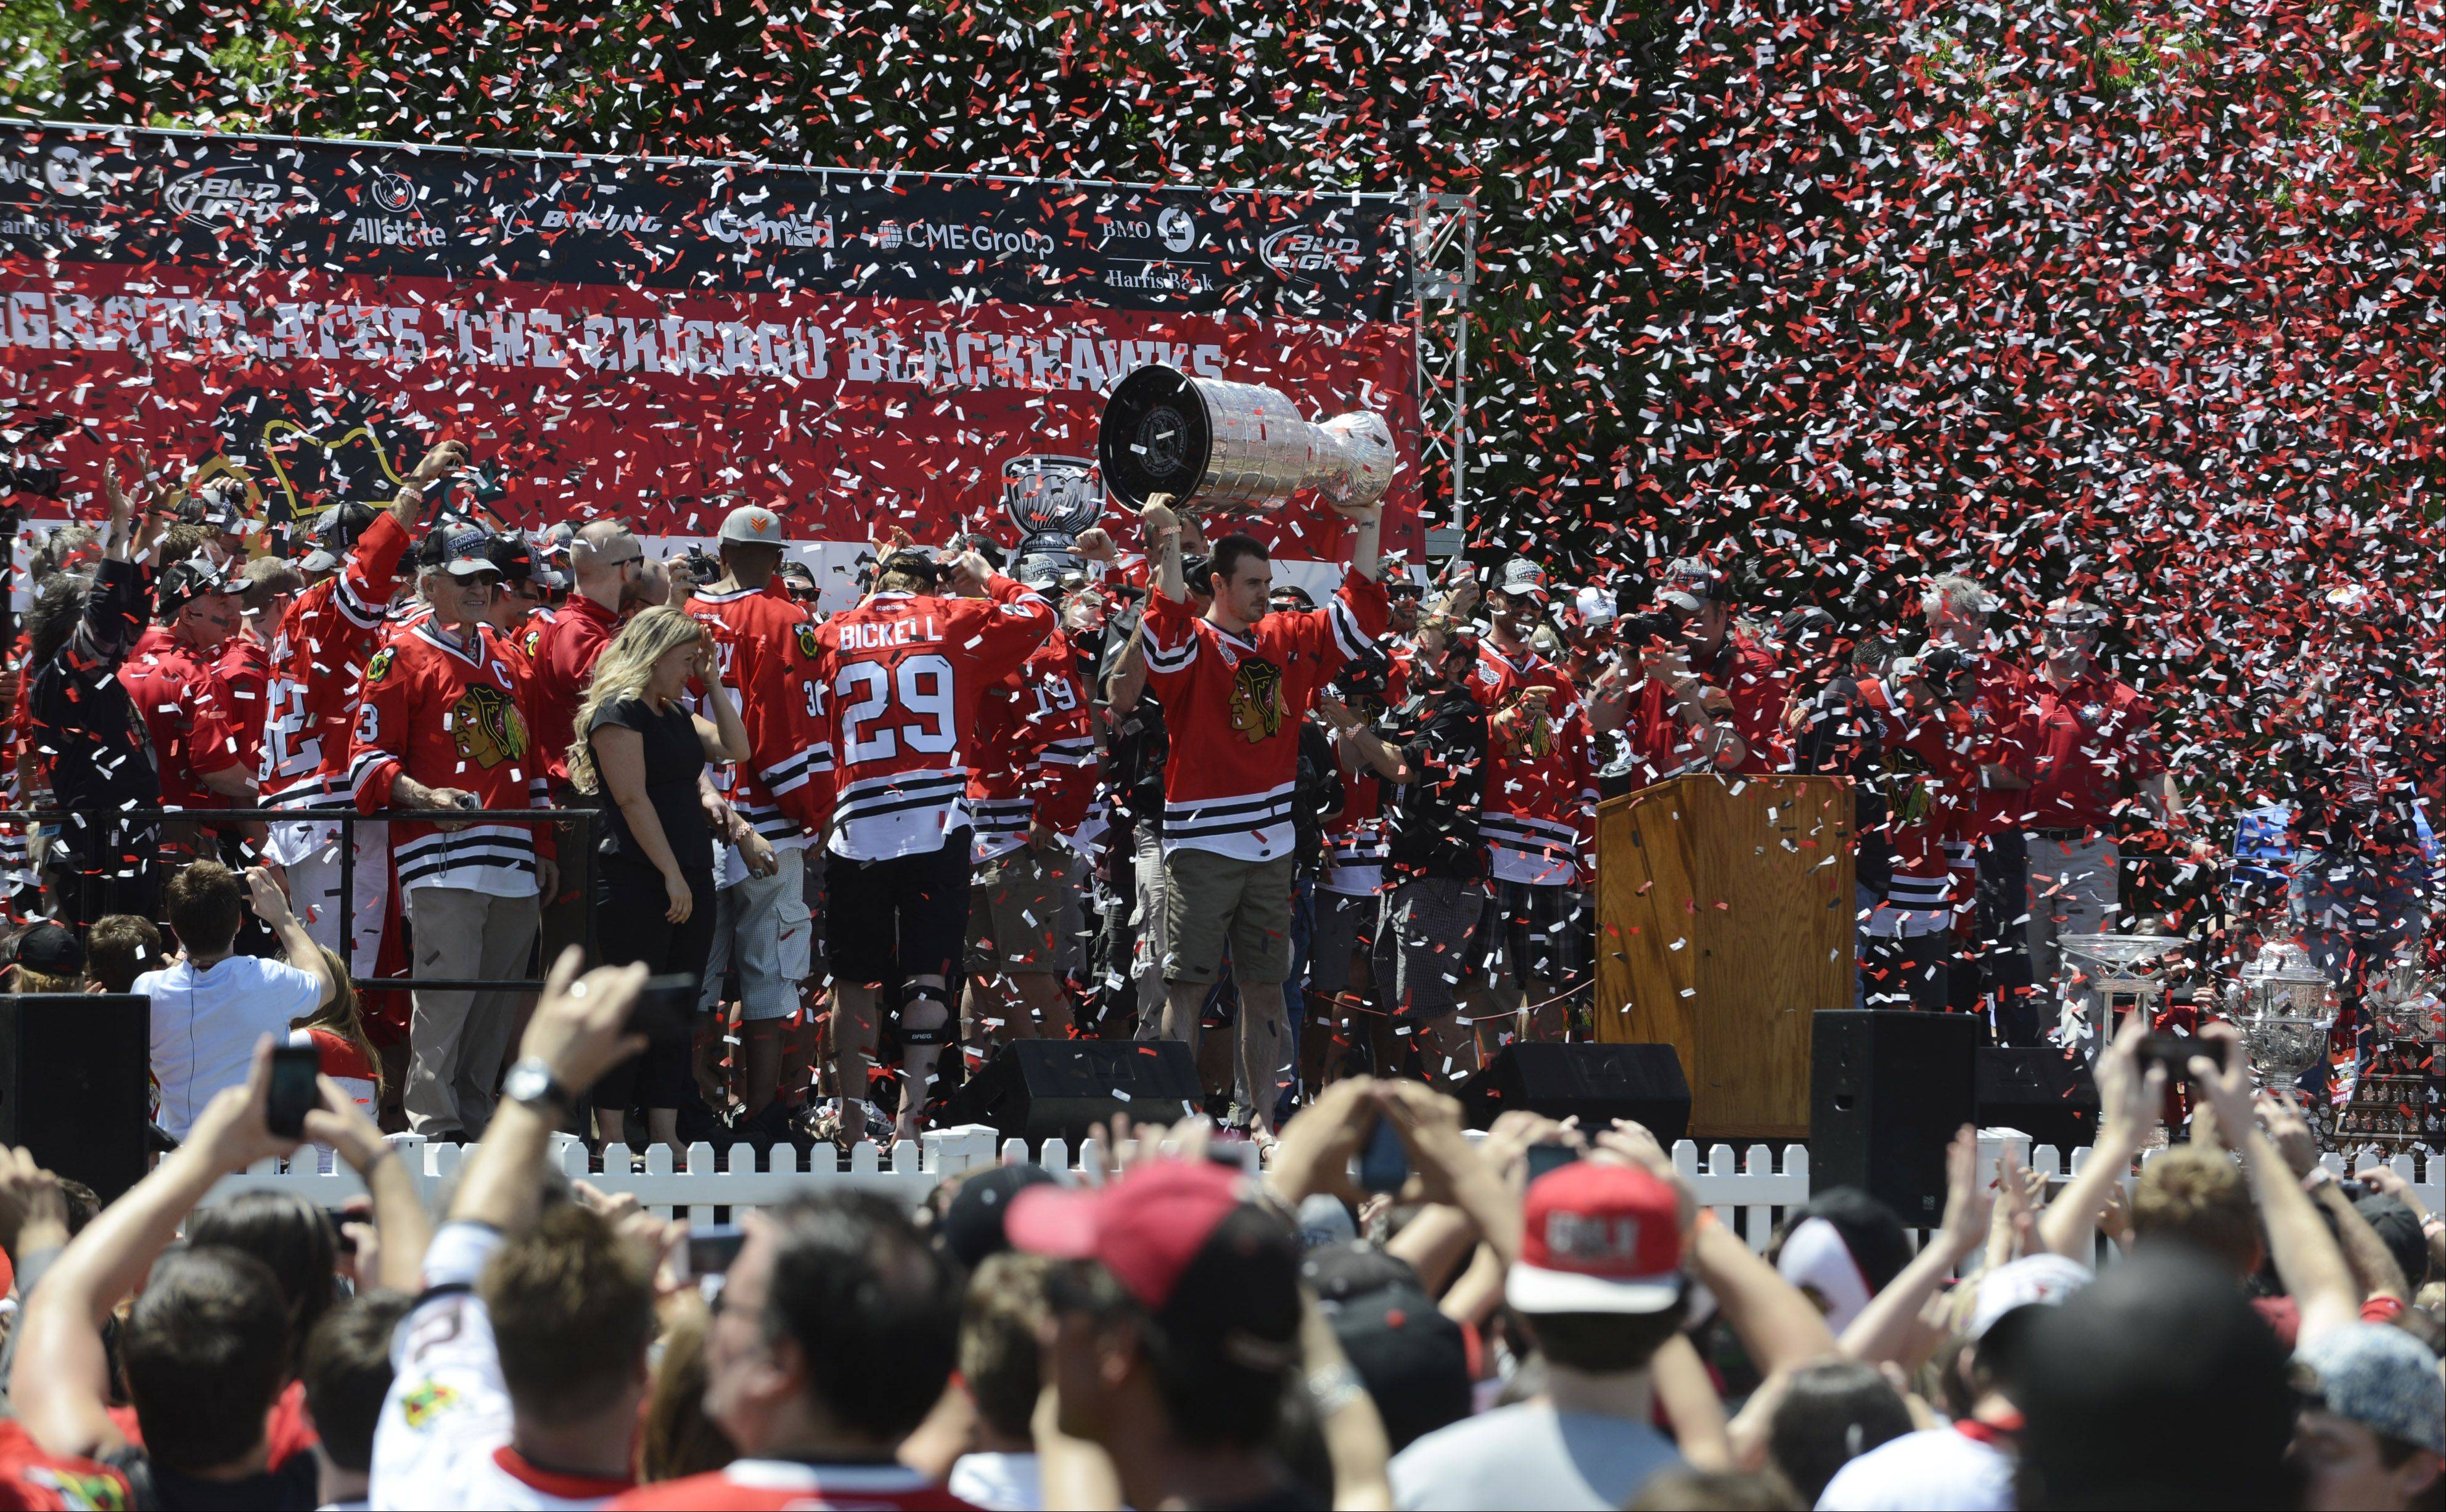 Blackhawks' one goal: a city united